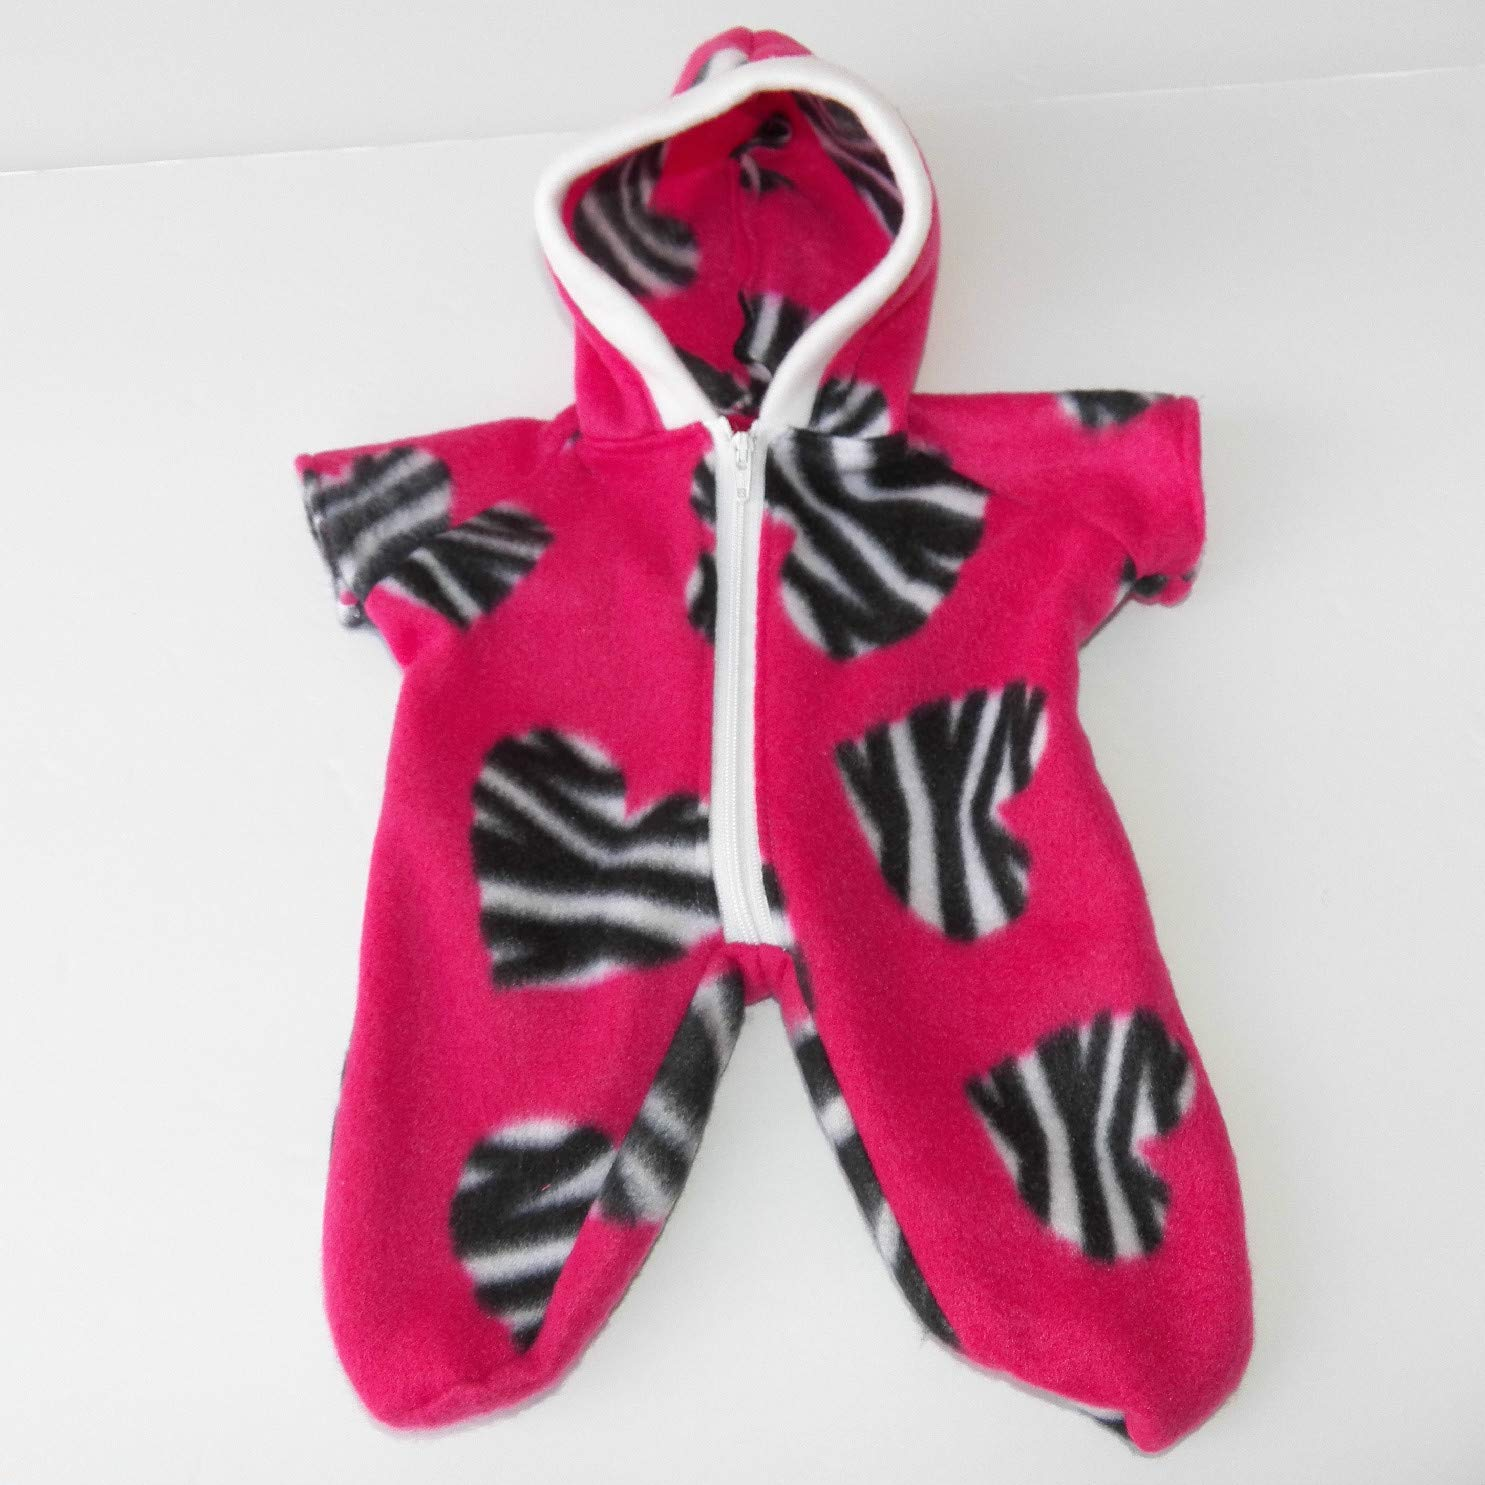 Cabbage Patch Doll Clothes 14 Inch Girl or Preemie Size Pink Zebra Snowsuit Clothes Only